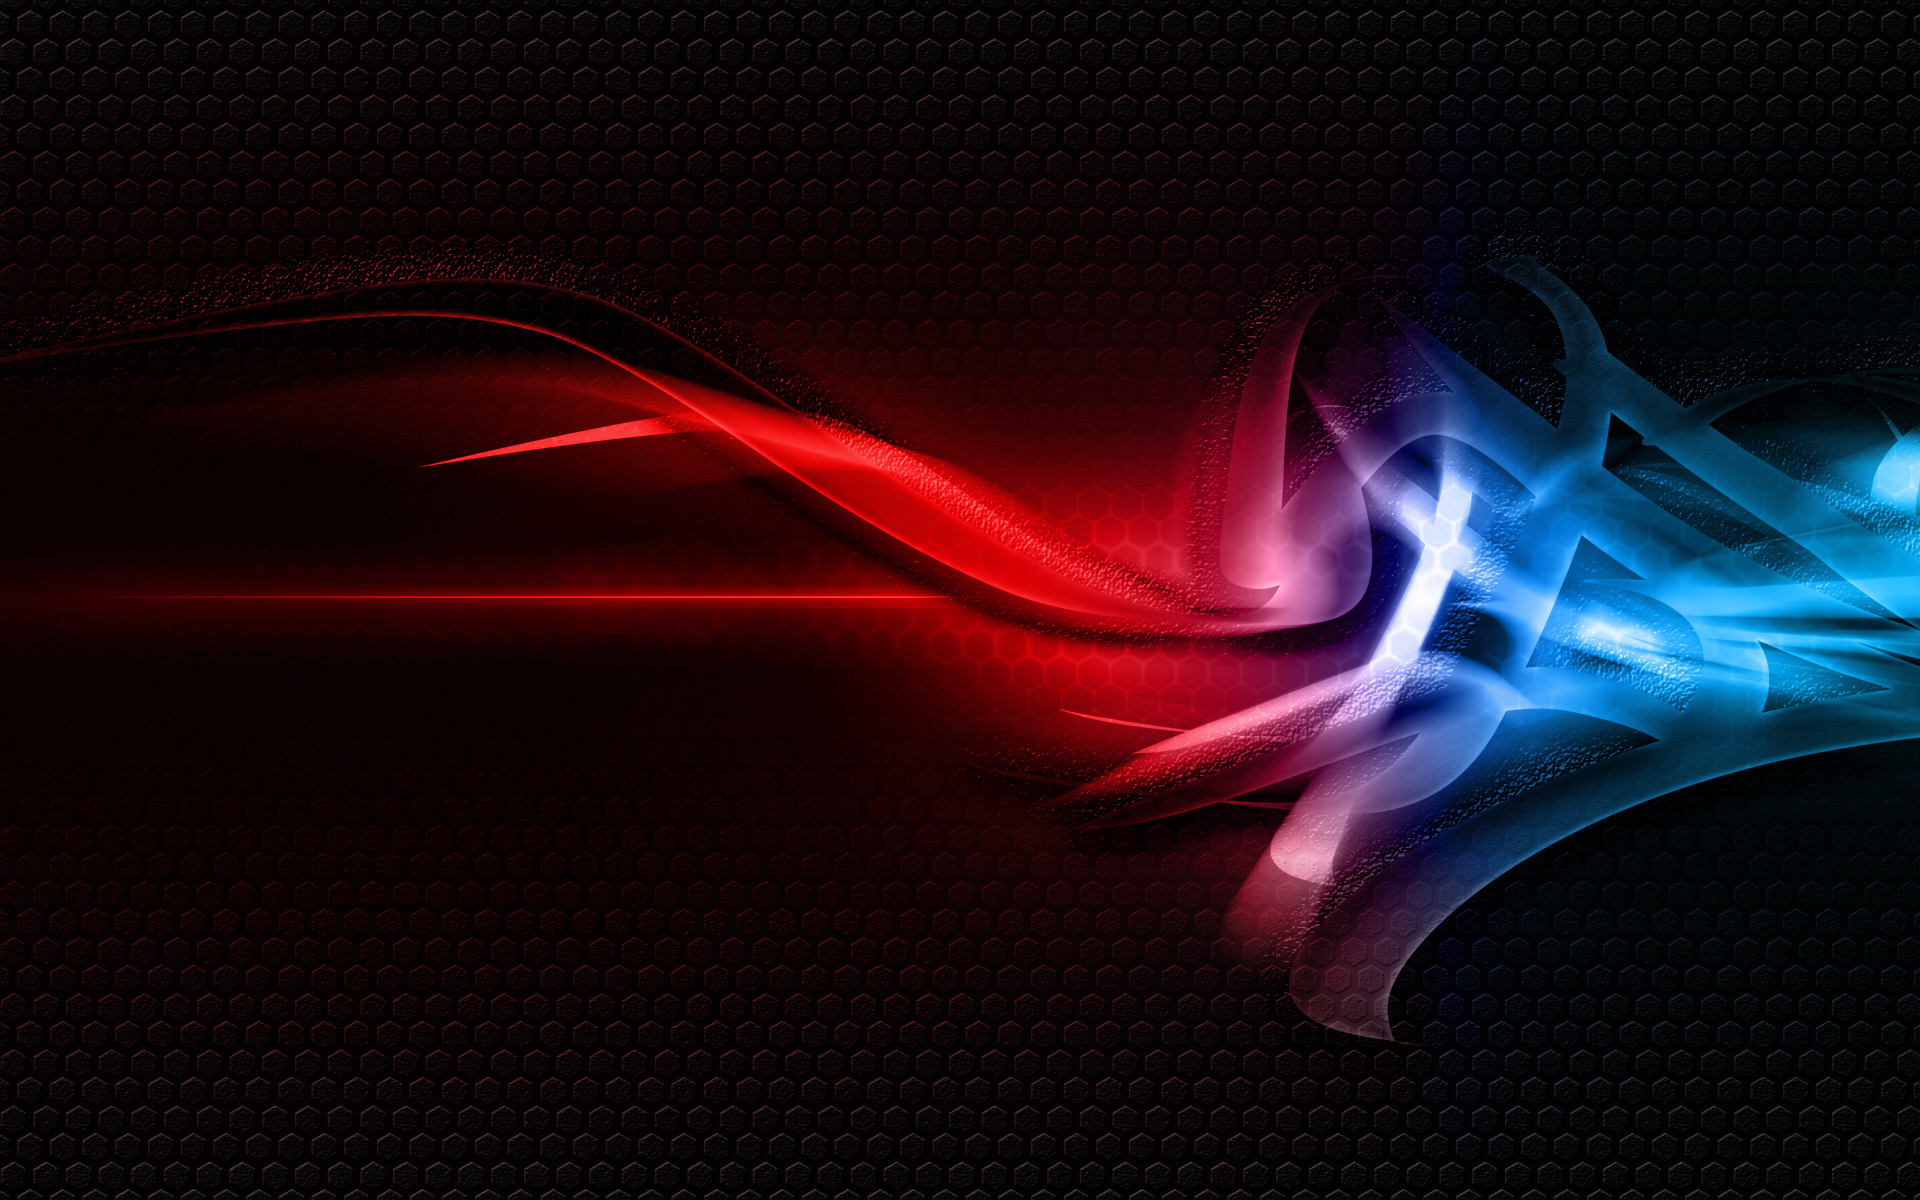 blue-and-red-jpg-%C3%97-wallpaper-wp5005331